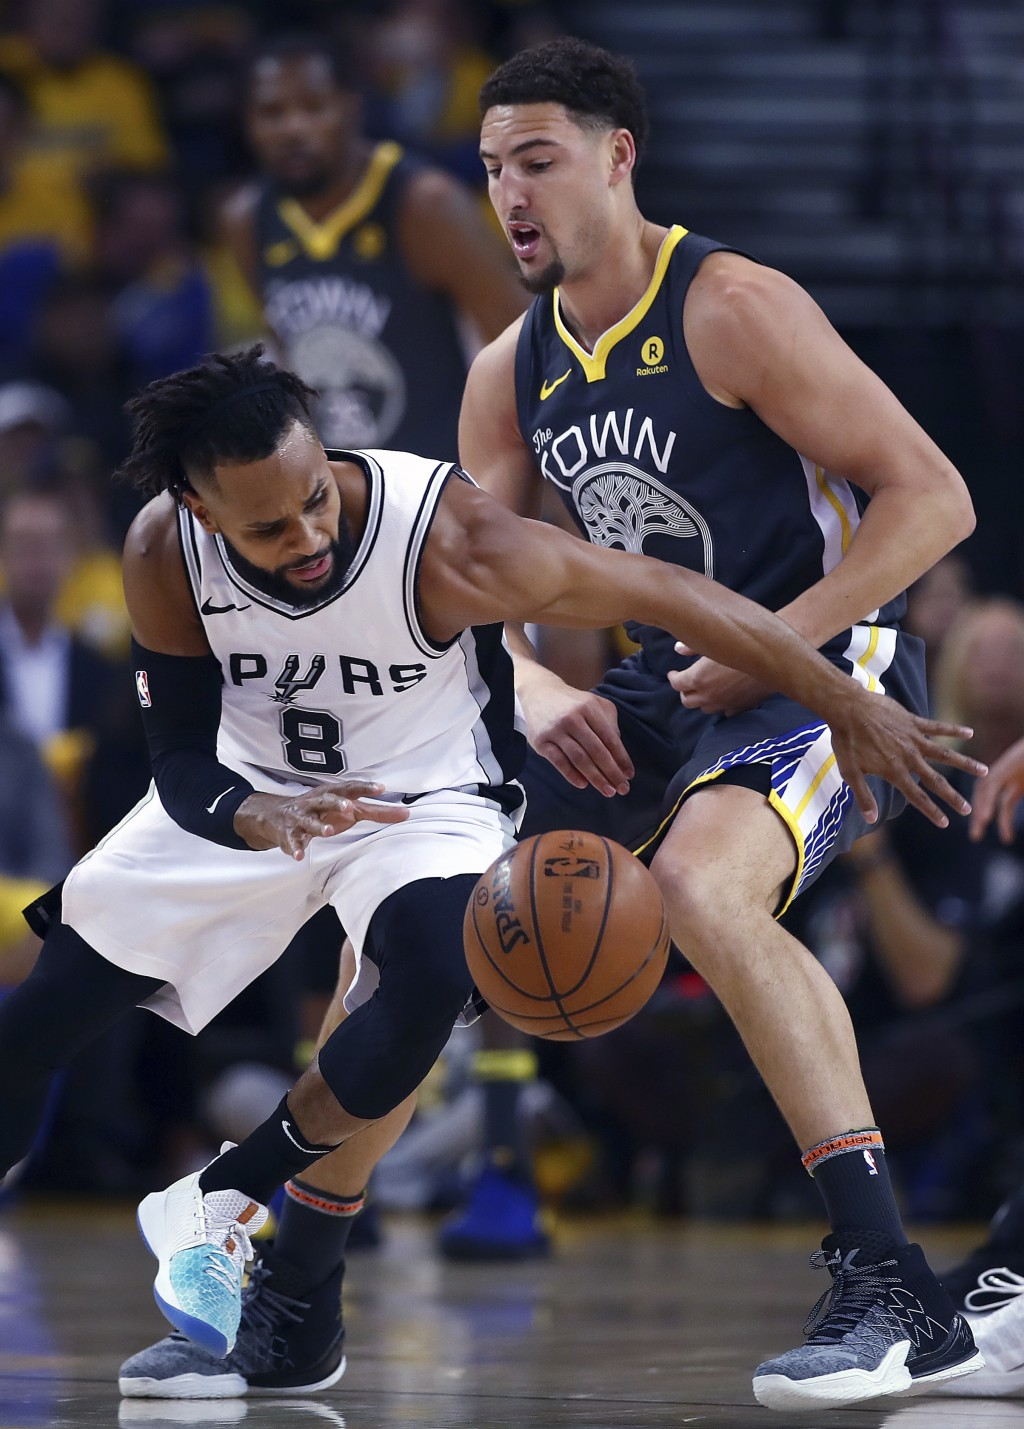 Golden State Warriors' Klay Thompson, right, guards San Antonio Spurs' Patty Mills (8) during the first quarter in Game 2 of a first-round NBA basketb